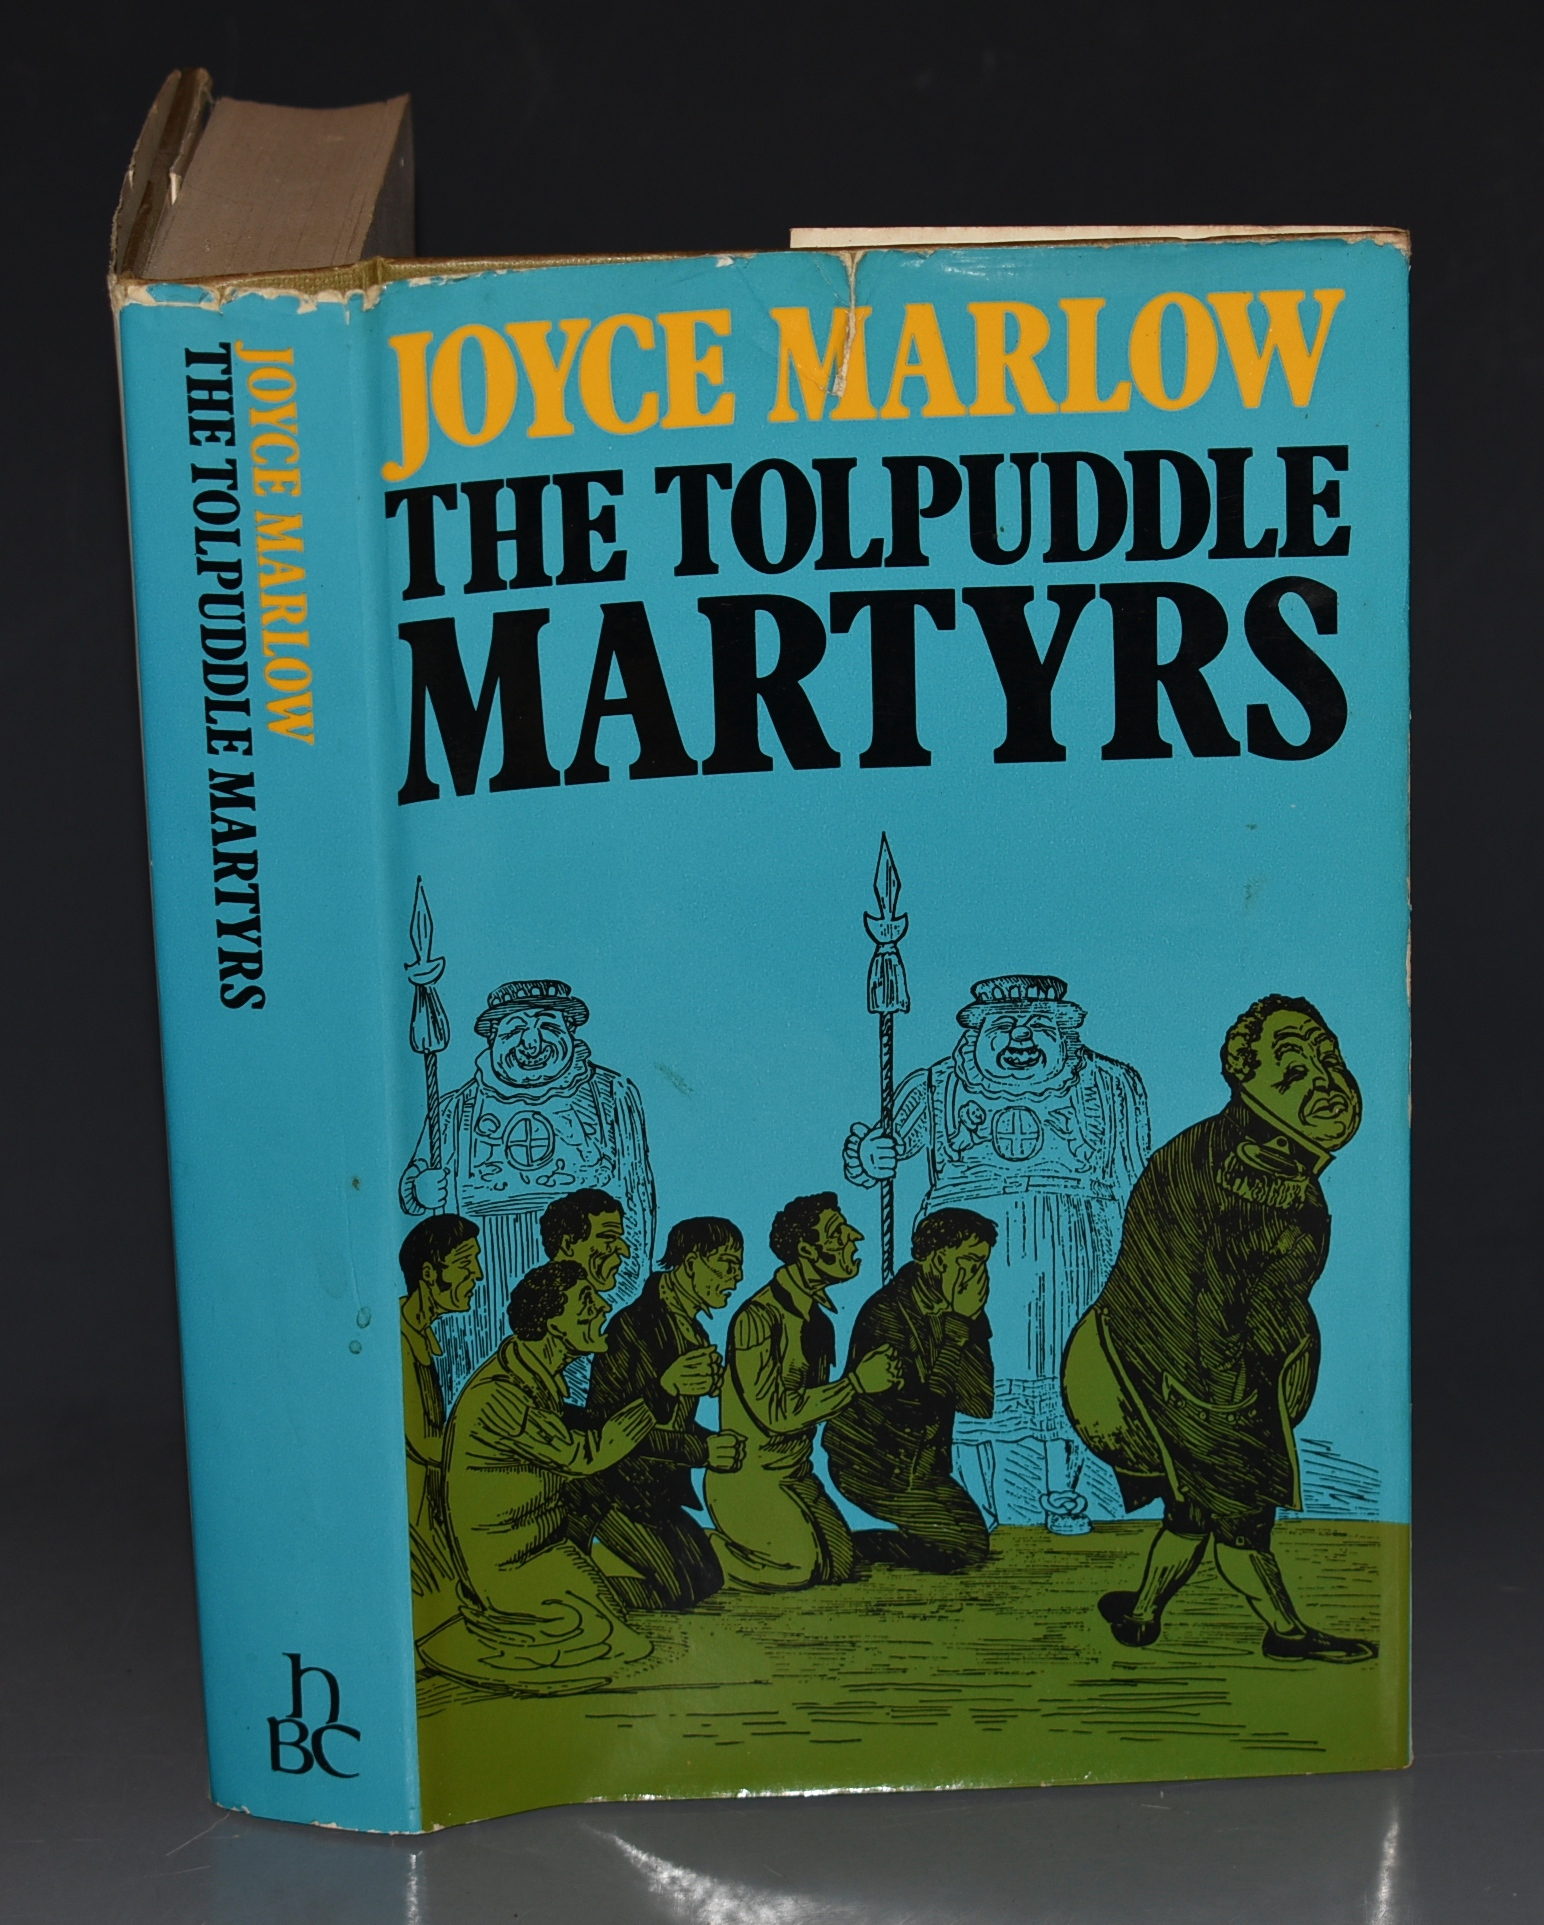 Image for The Tolpuddle Martyrs.